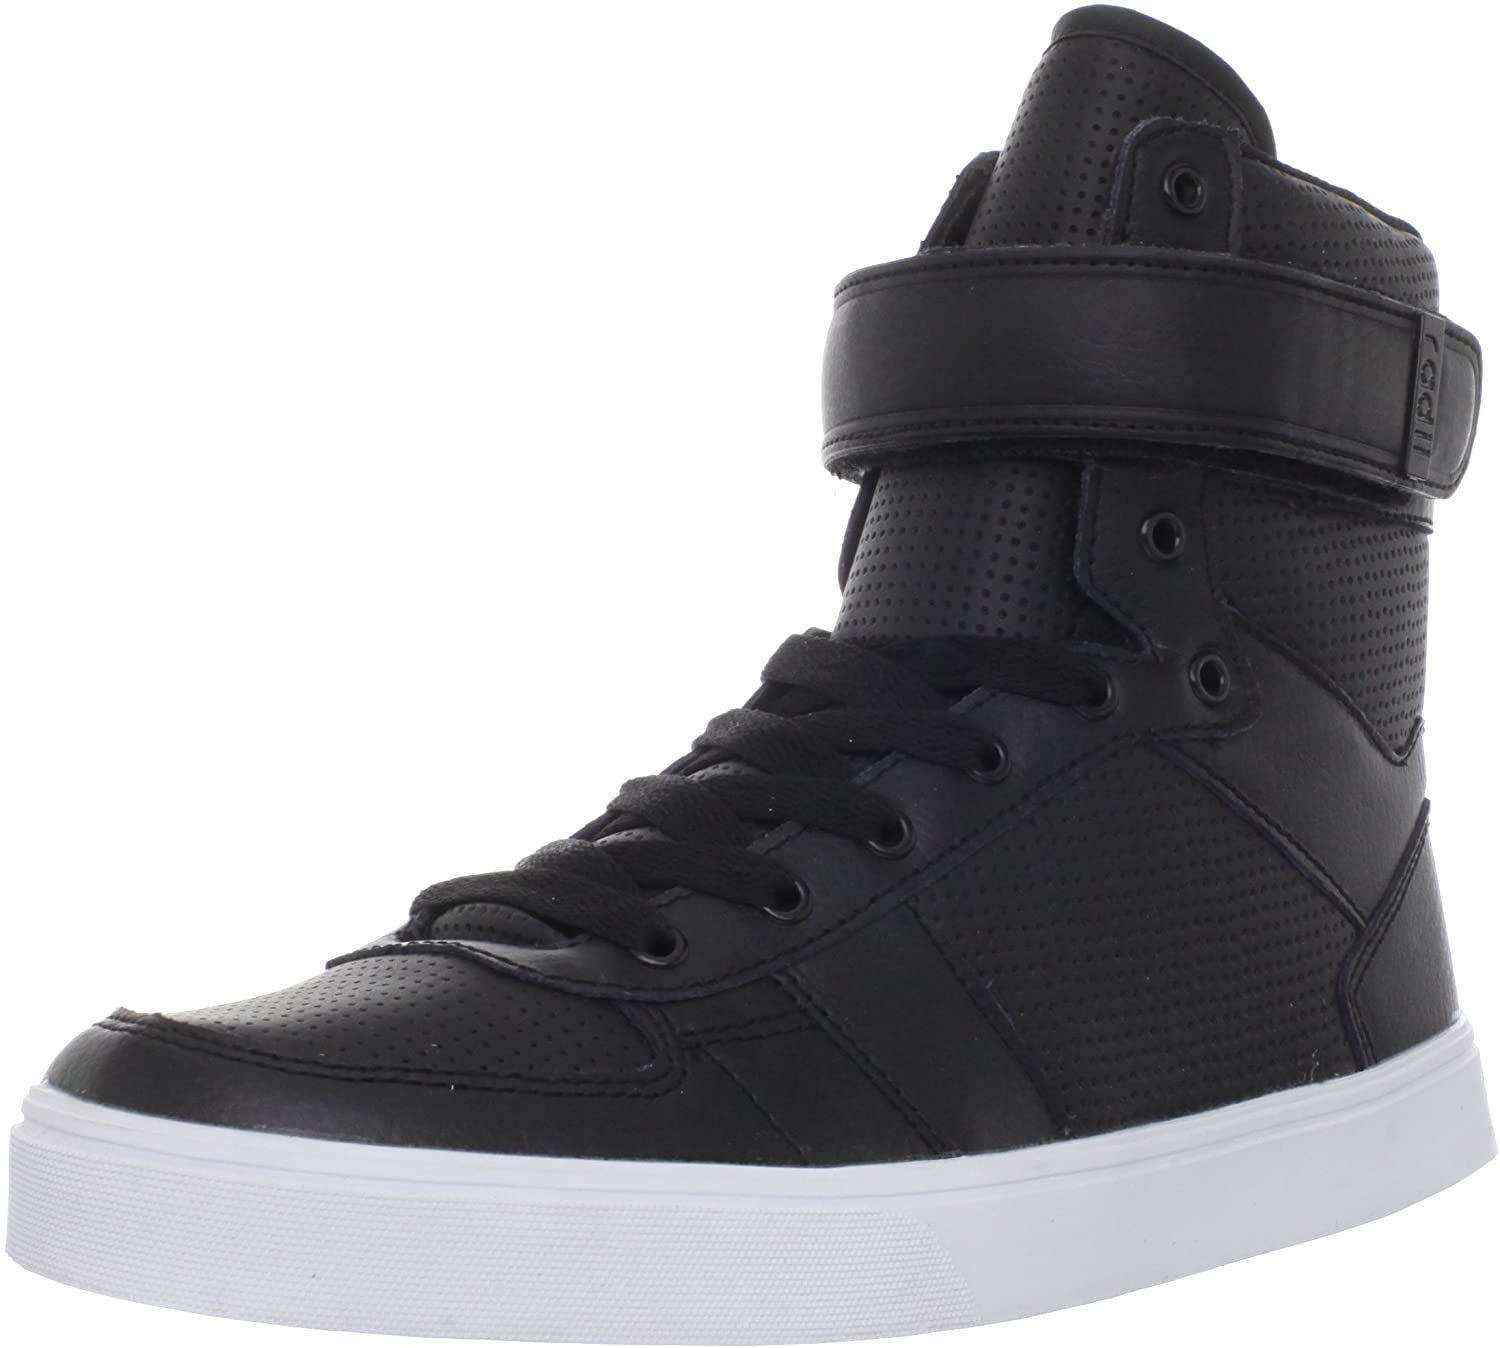 Radii Moon Walker - Black